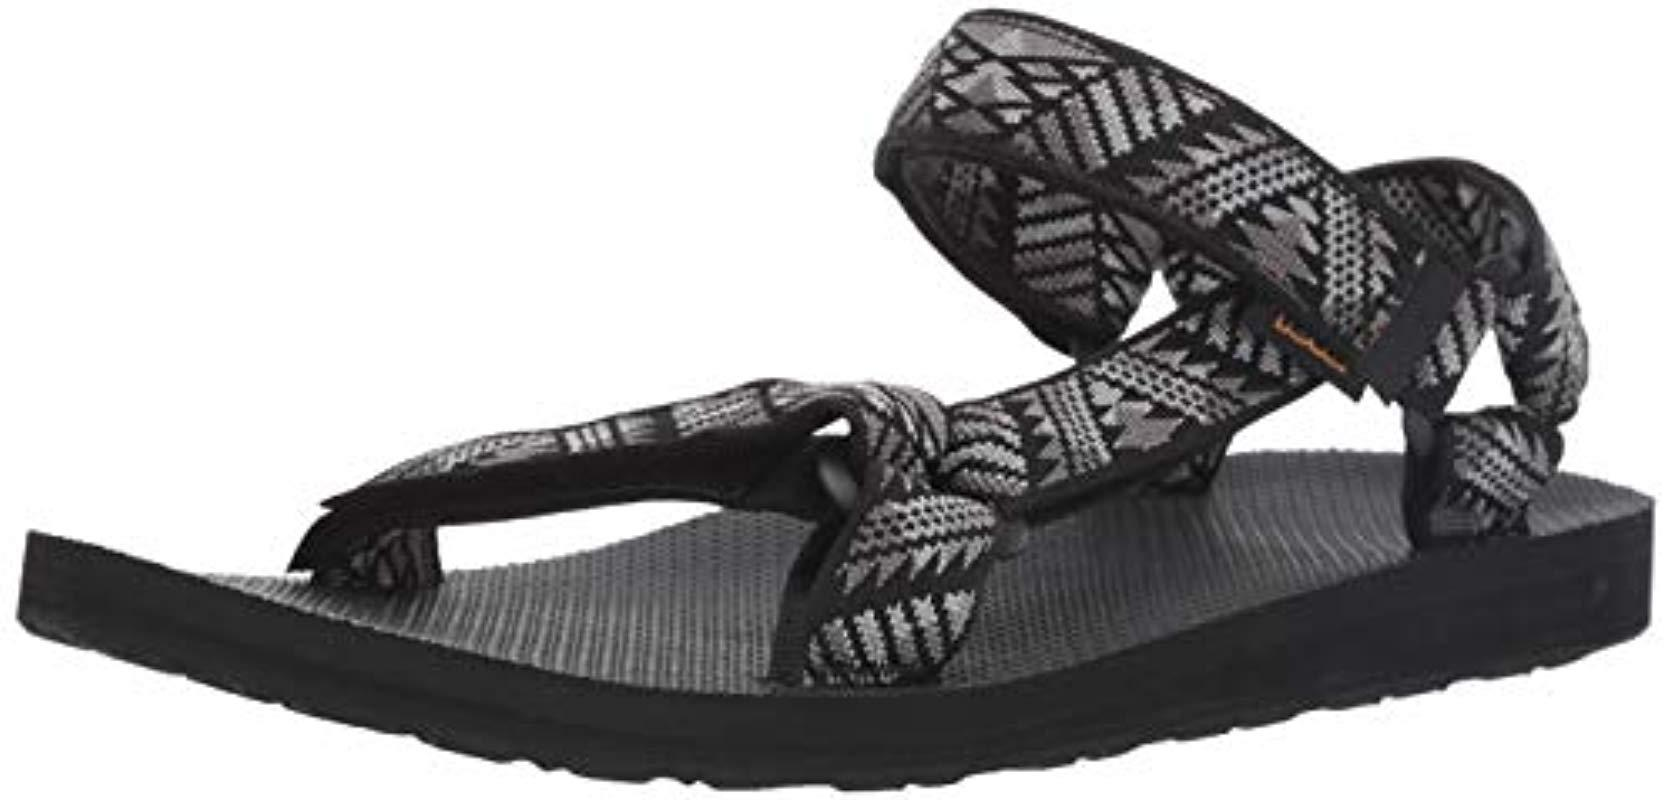 047992be8207 Lyst - Teva Original Universal M s Ankle Strap Sandals in Black for ...